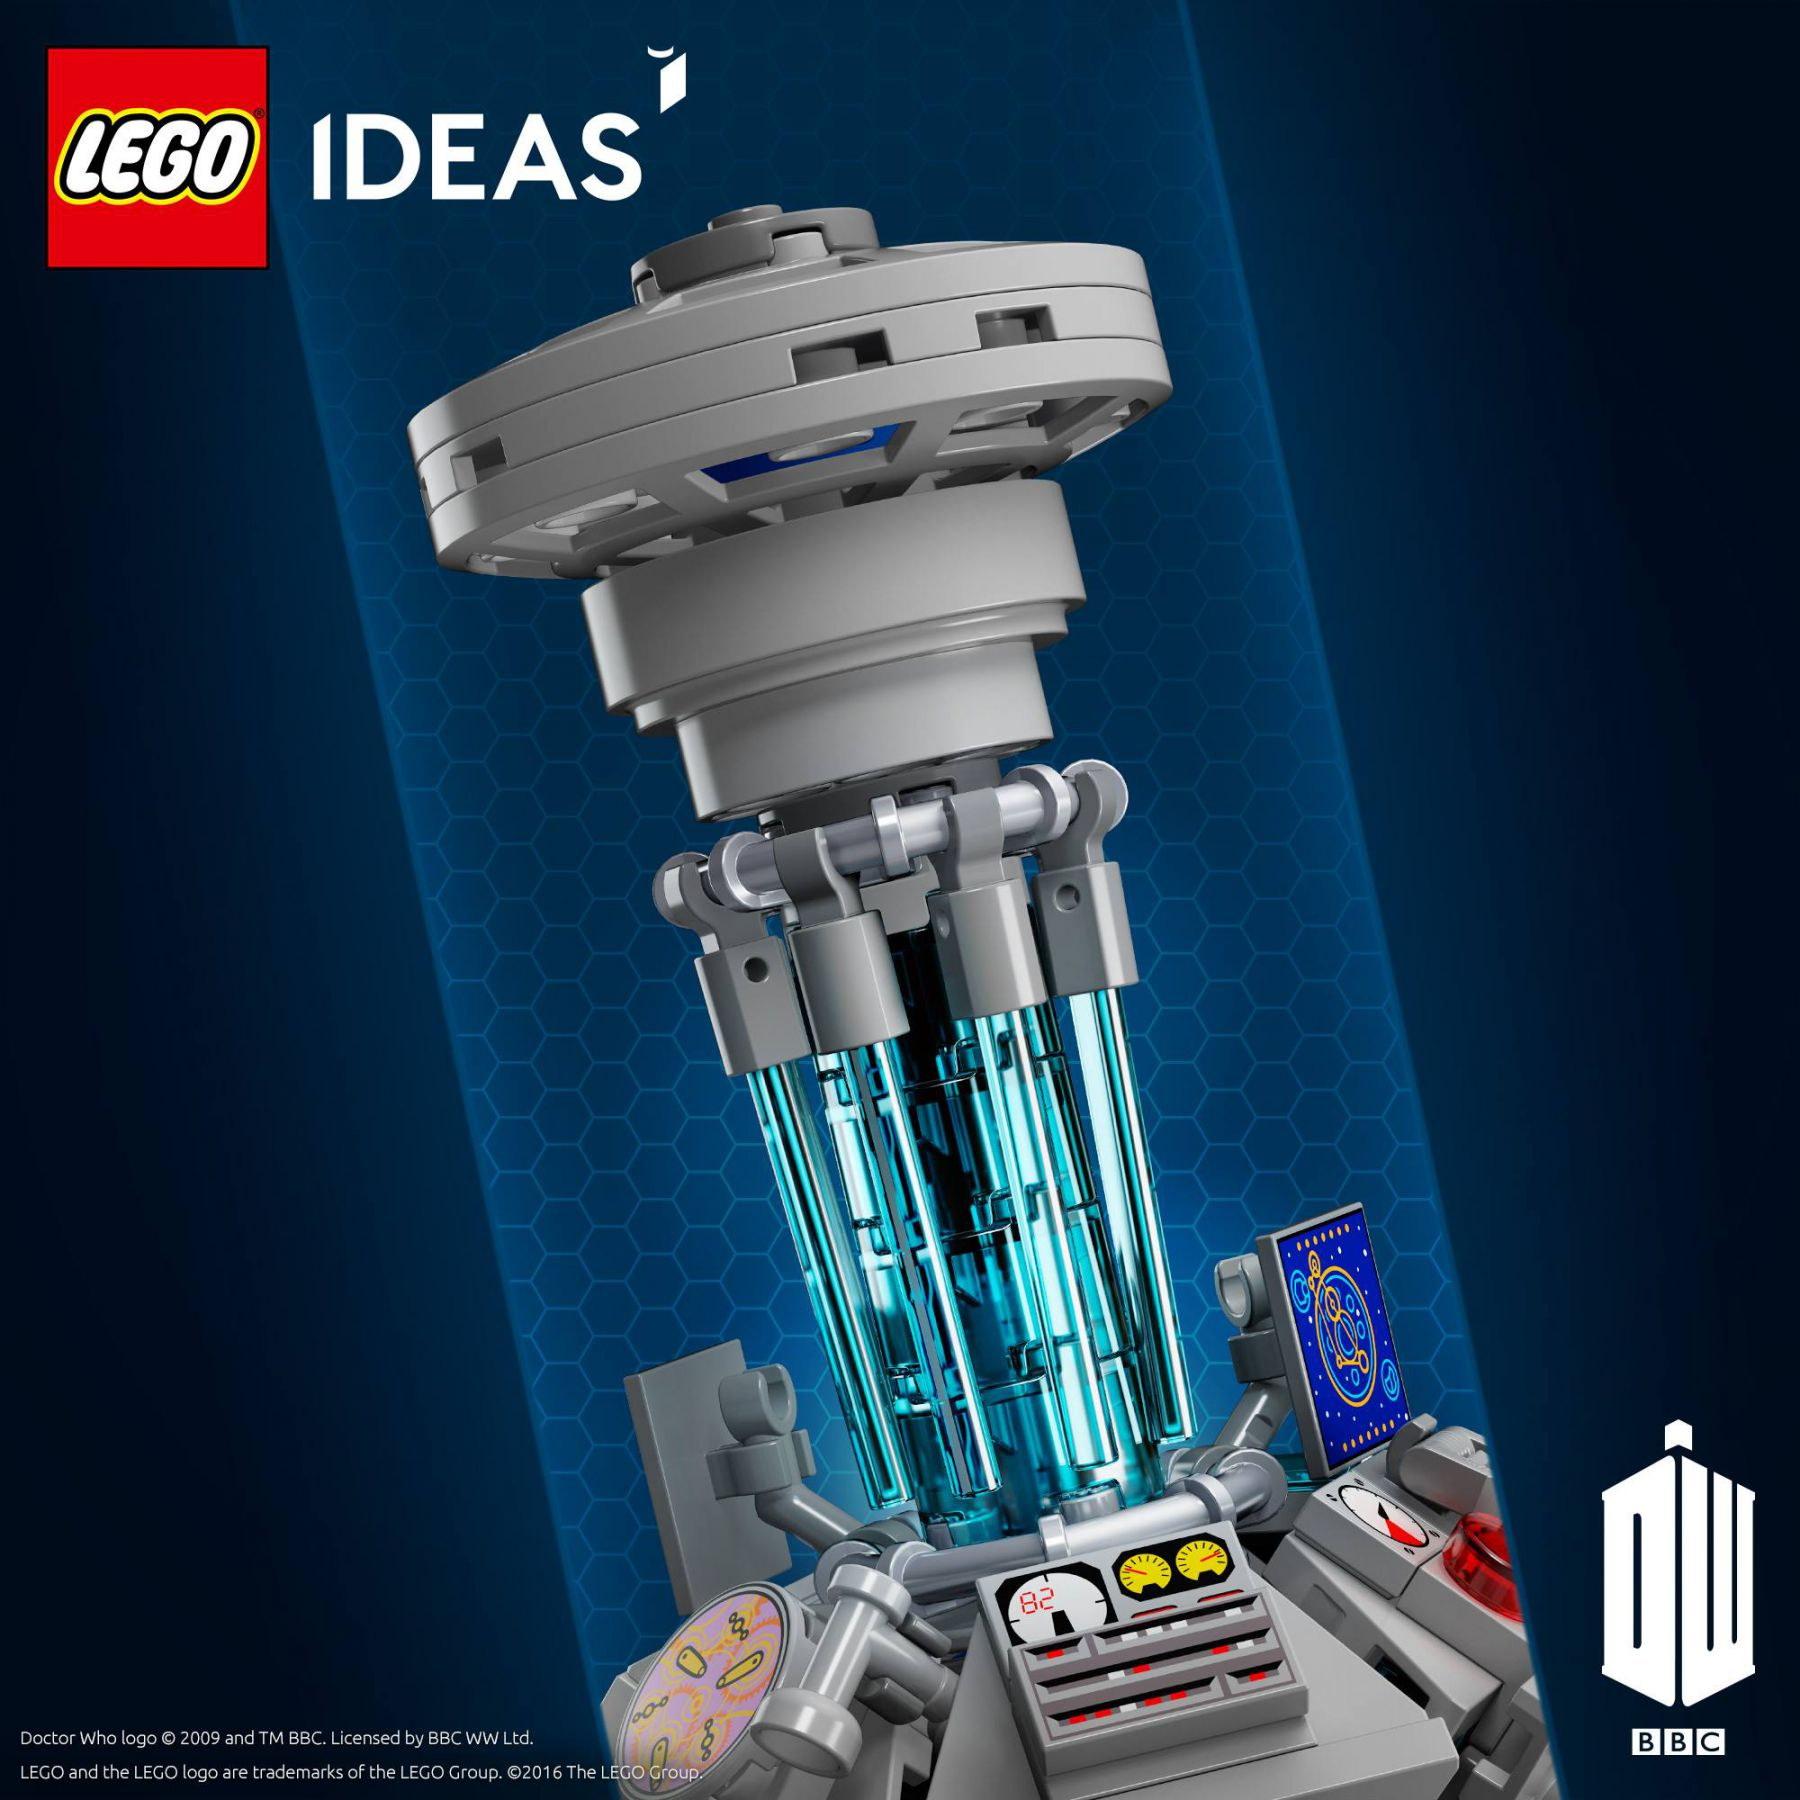 LEGO Ideas 21304 Doctor Who 21304-1_doctor_who_promo02.jpg